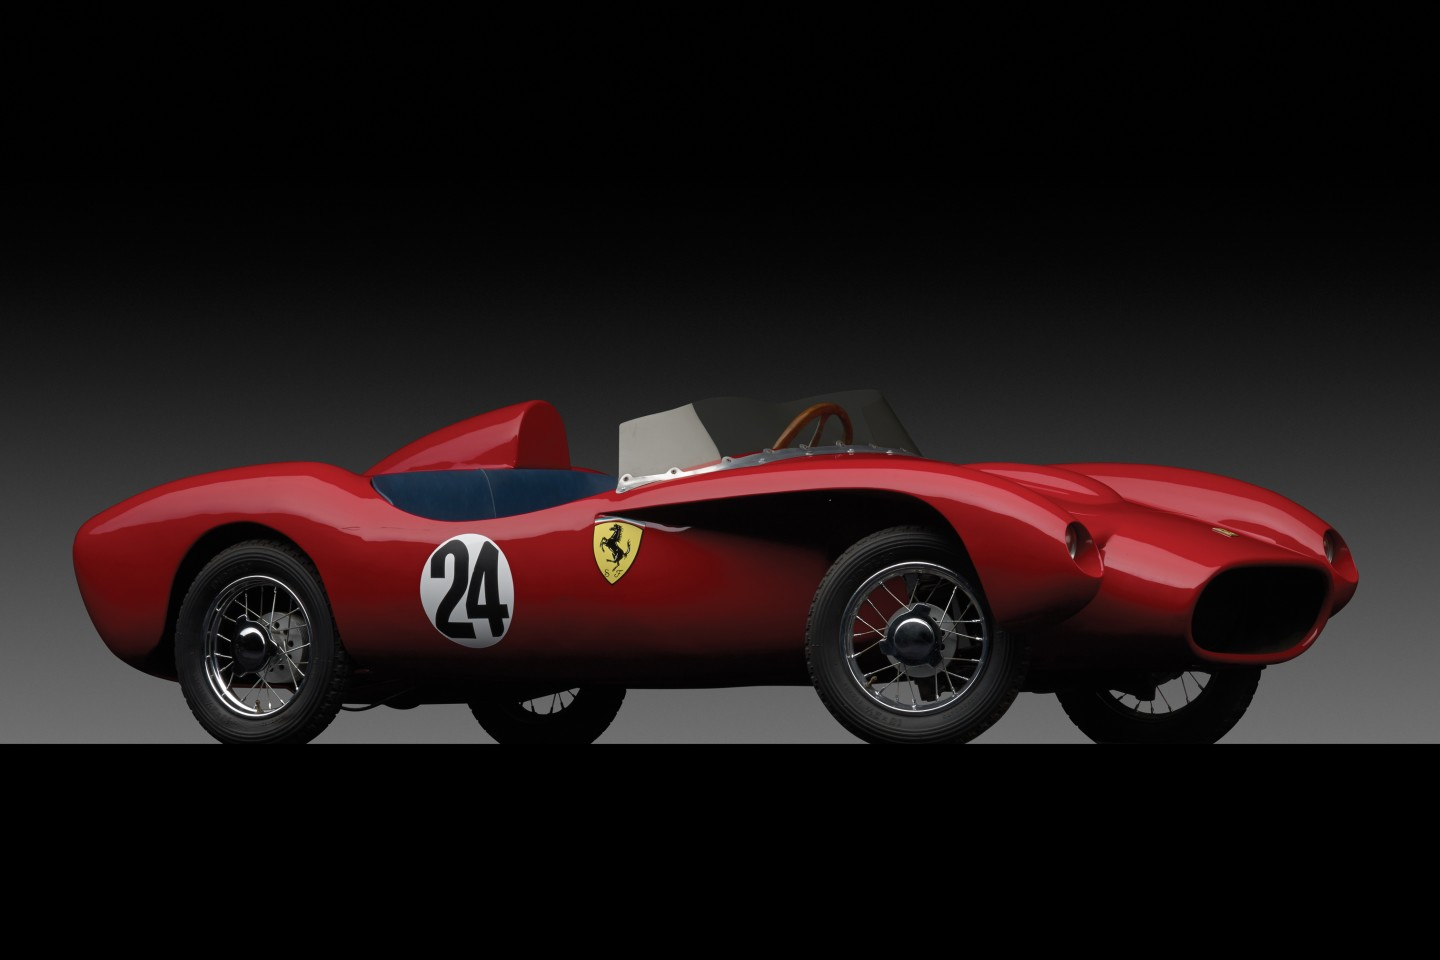 In November 2013, RM Auctions (now RM-Sotheby's) sold what was then the world's most expensive children's car at its annual December sale in New York. Produced by Modena Ferrarina Italia, the ½ scale Ferrari 250 Testa Rossa replica sold for $126,500. The electric-powered Testa Rossa replica has a handmade steel bodywork and was distributed in-period by the American Ferrari distributor, Luigi Chinetti Motors. It is believed that twenty-five Testa Rossa replicas were built, with fewer than five remaining worldwide. This car was previously owned by renowned Ferrari collector Kirk F. White, who had it restored to the same standards as his concours-winning full-sized Ferraris.